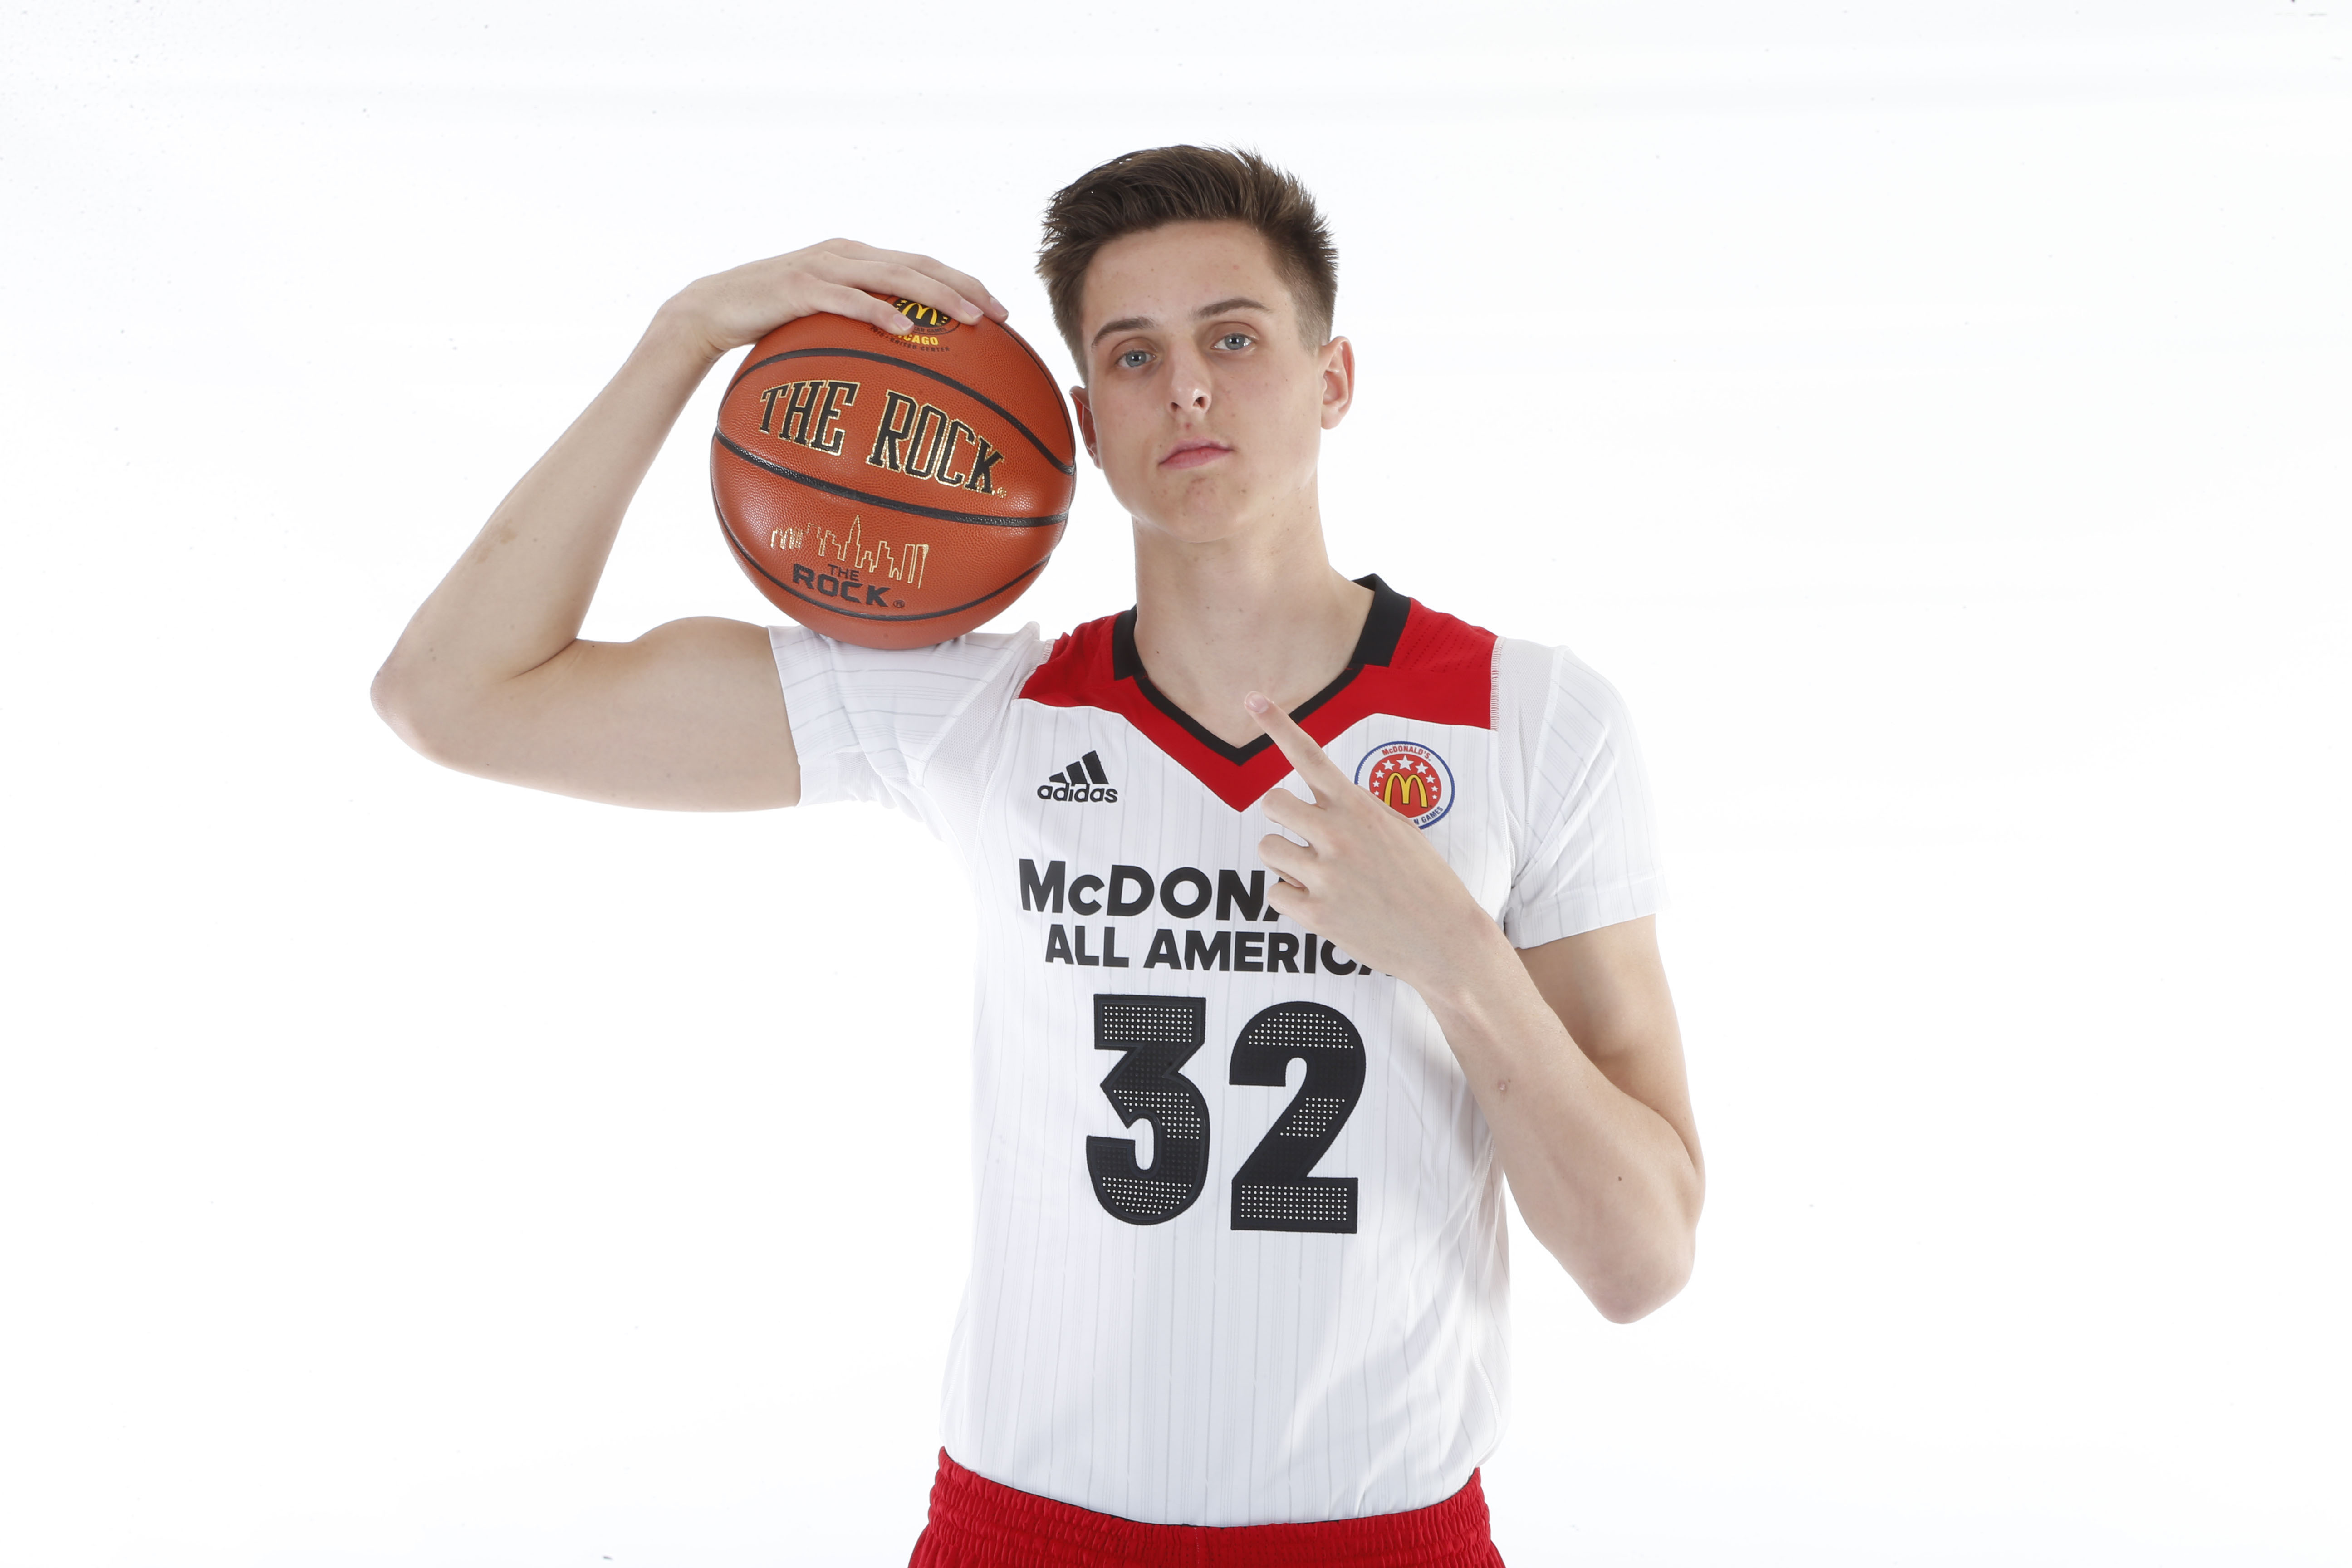 Mar 26, 2016; Chicago, IL, USA; McDonalds All American center Zach Collins (32) poses for photos on portrait day at the Marriott Hotel. Mandatory Credit: Brian Spurlock-USA TODAY Sports ORG XMIT: USATSI-267702 ORIG FILE ID: 20160326_szo_ss1_222.JPG